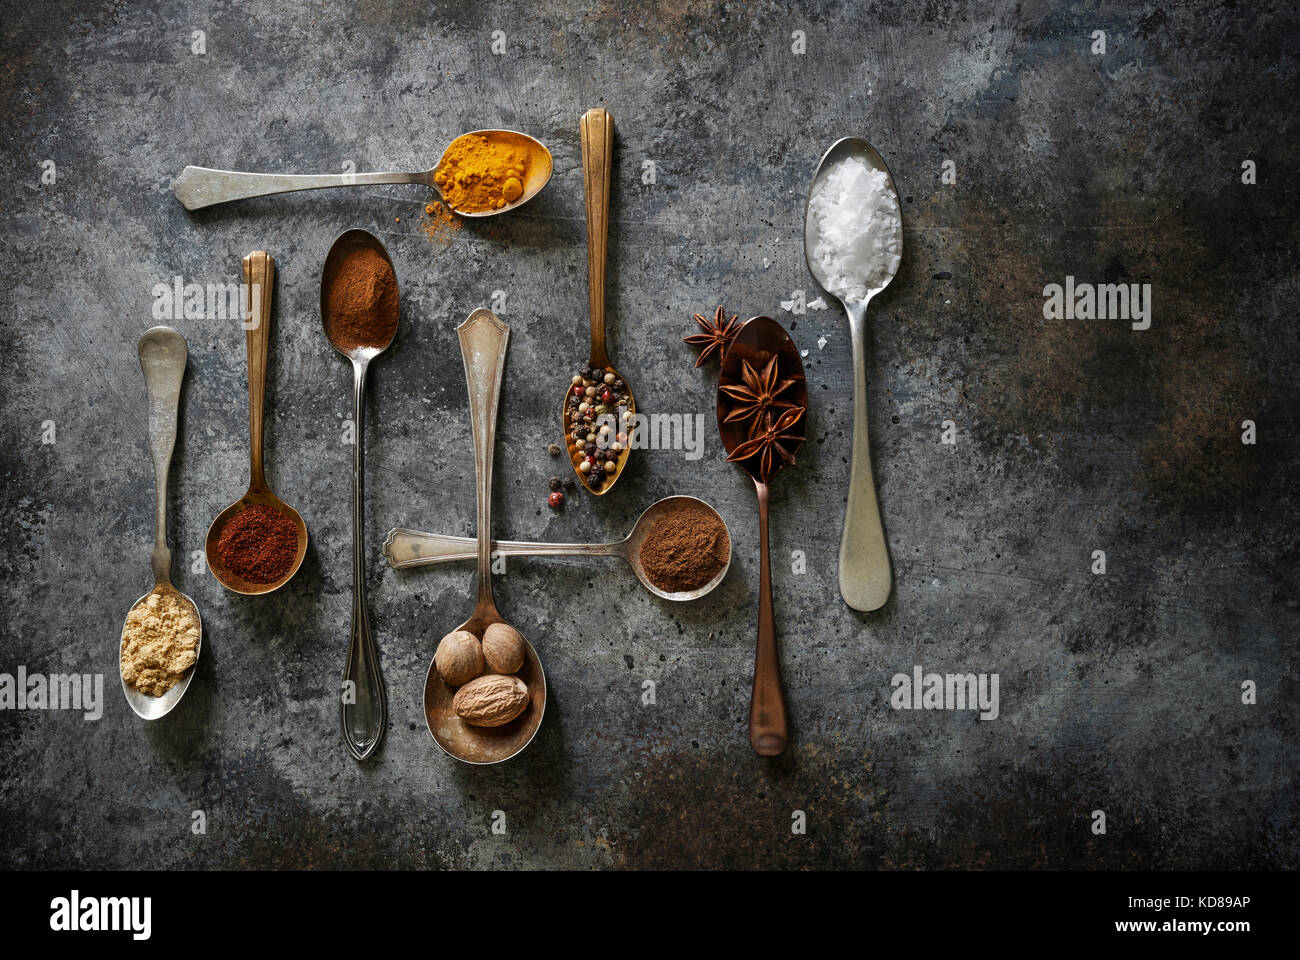 An array of beautifully laid out baking and cooking spices in vintage spoons on a rustic dark surface. - Stock Image